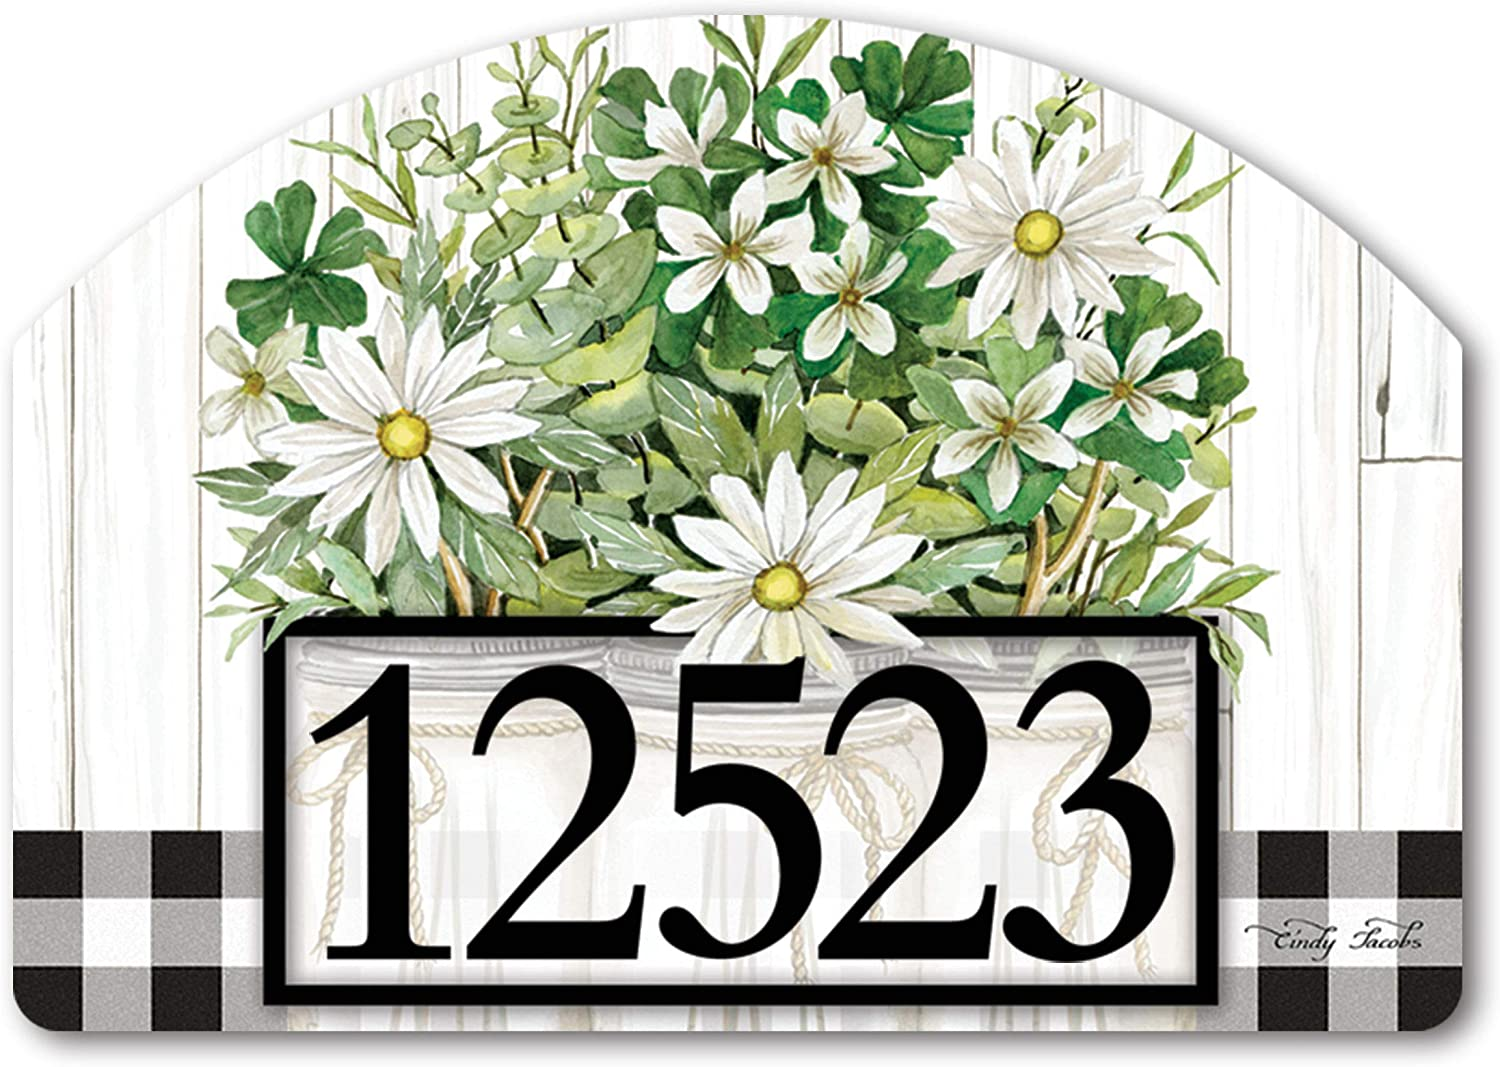 Yard Design Studio M Farmhouse Daisies Decorative Address Marker Yard Sign Magnet, Made in USA, Superior Weather Durability, 14 x 10 Inches